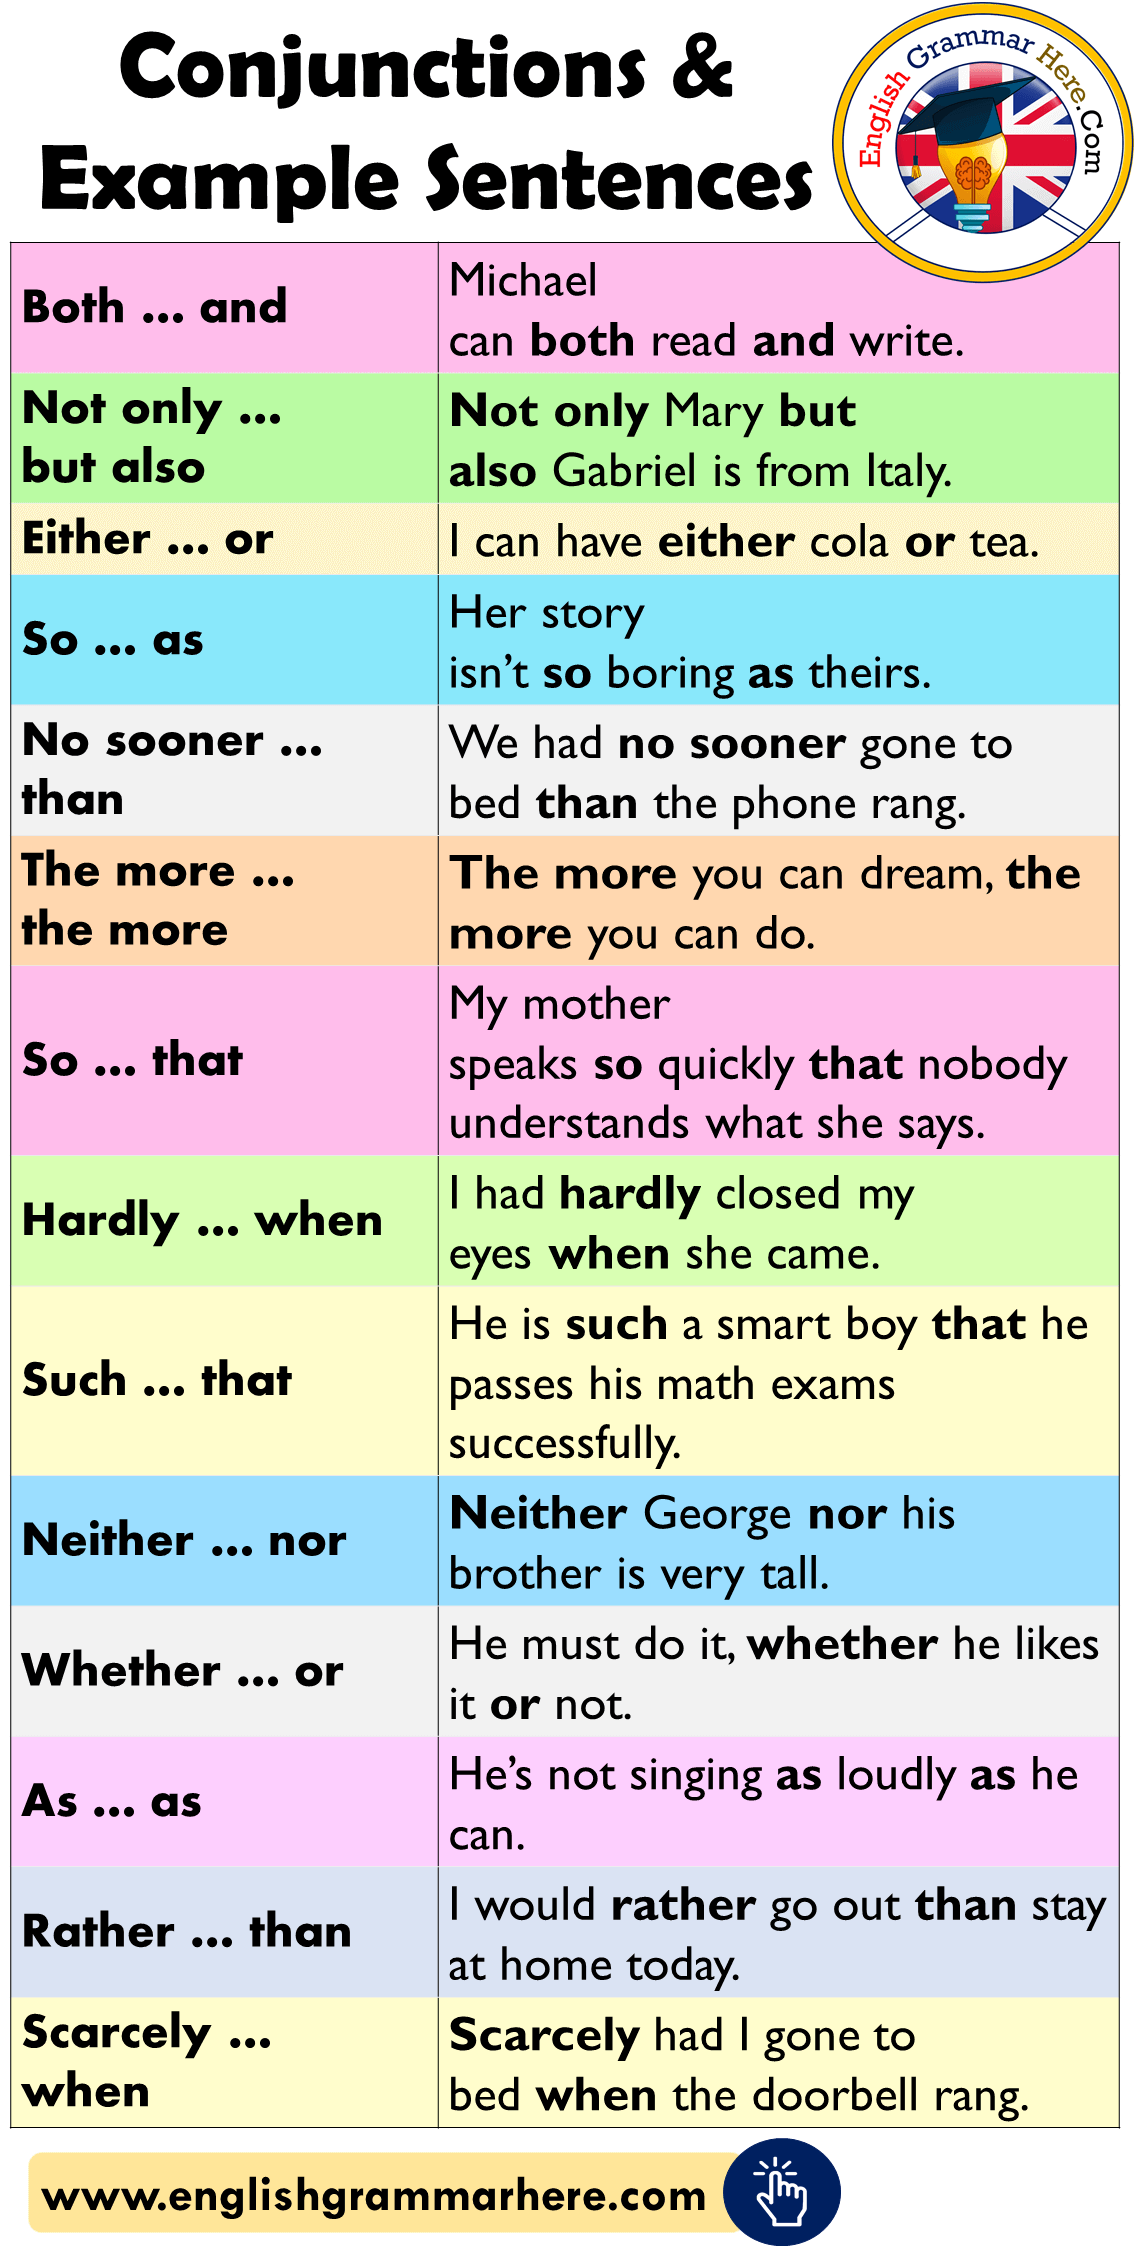 English Conjunctions List and Example Sentences